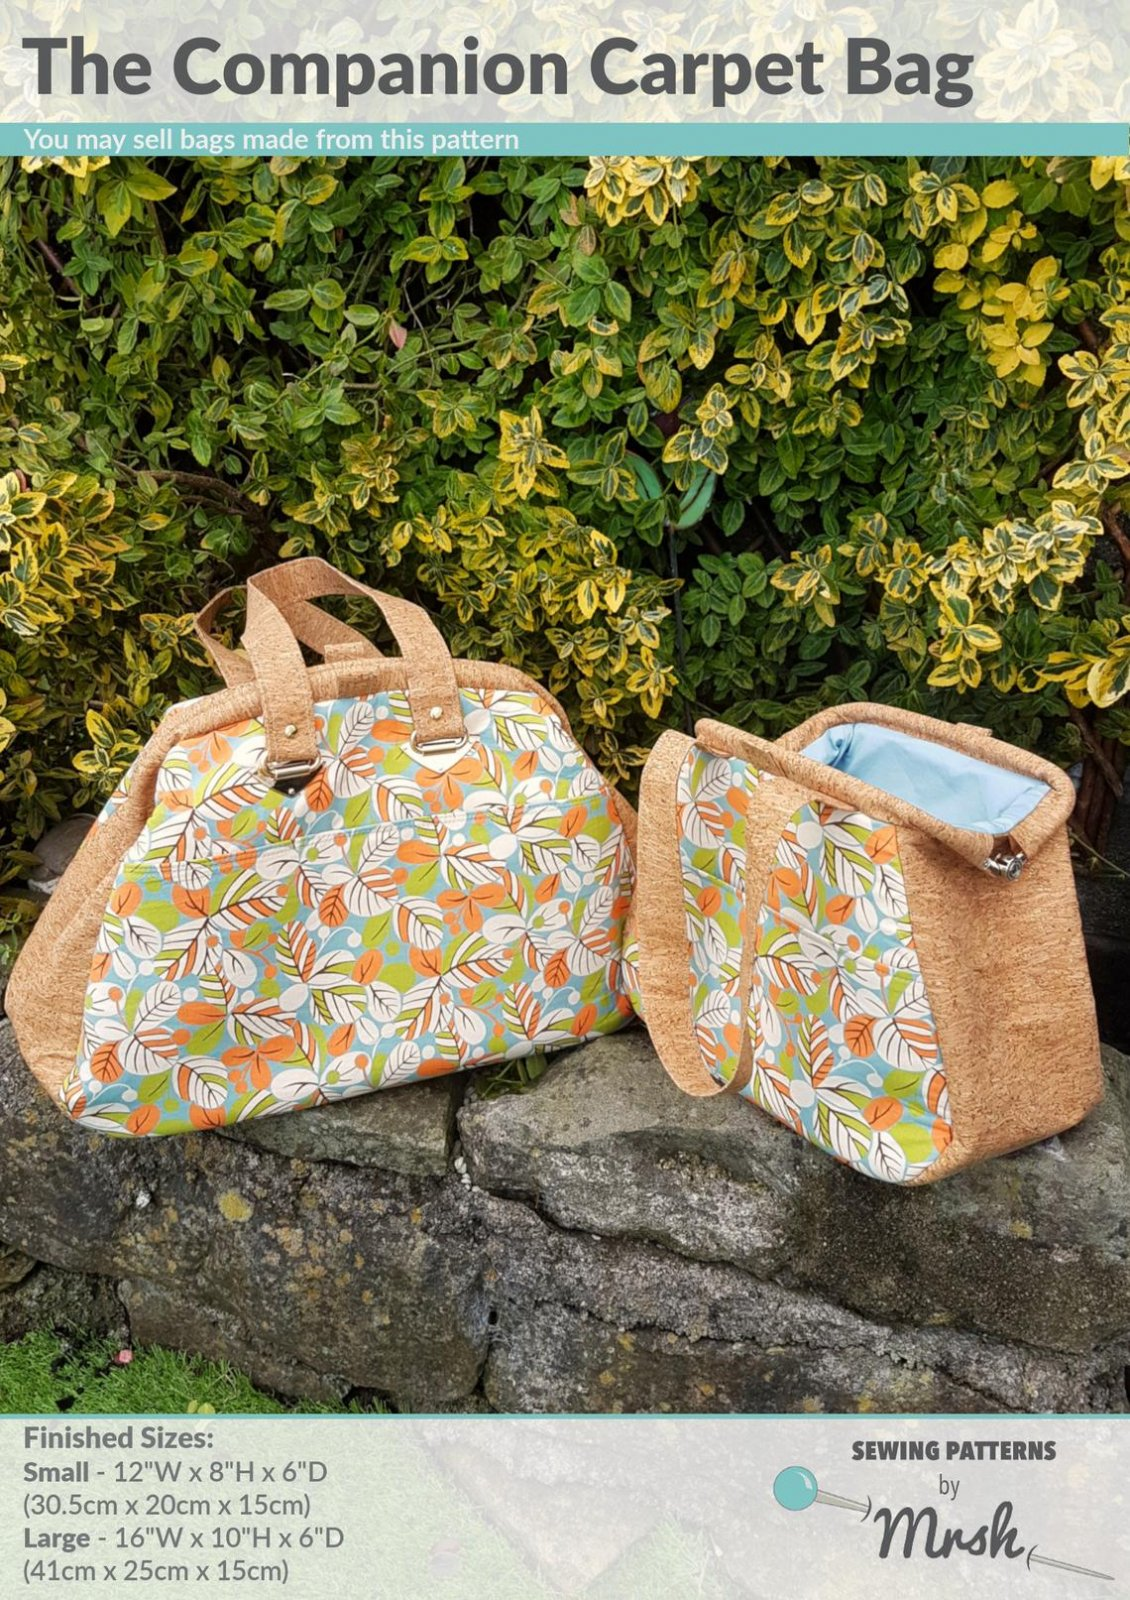 The Companion Carpet Bag Sewing Pattern